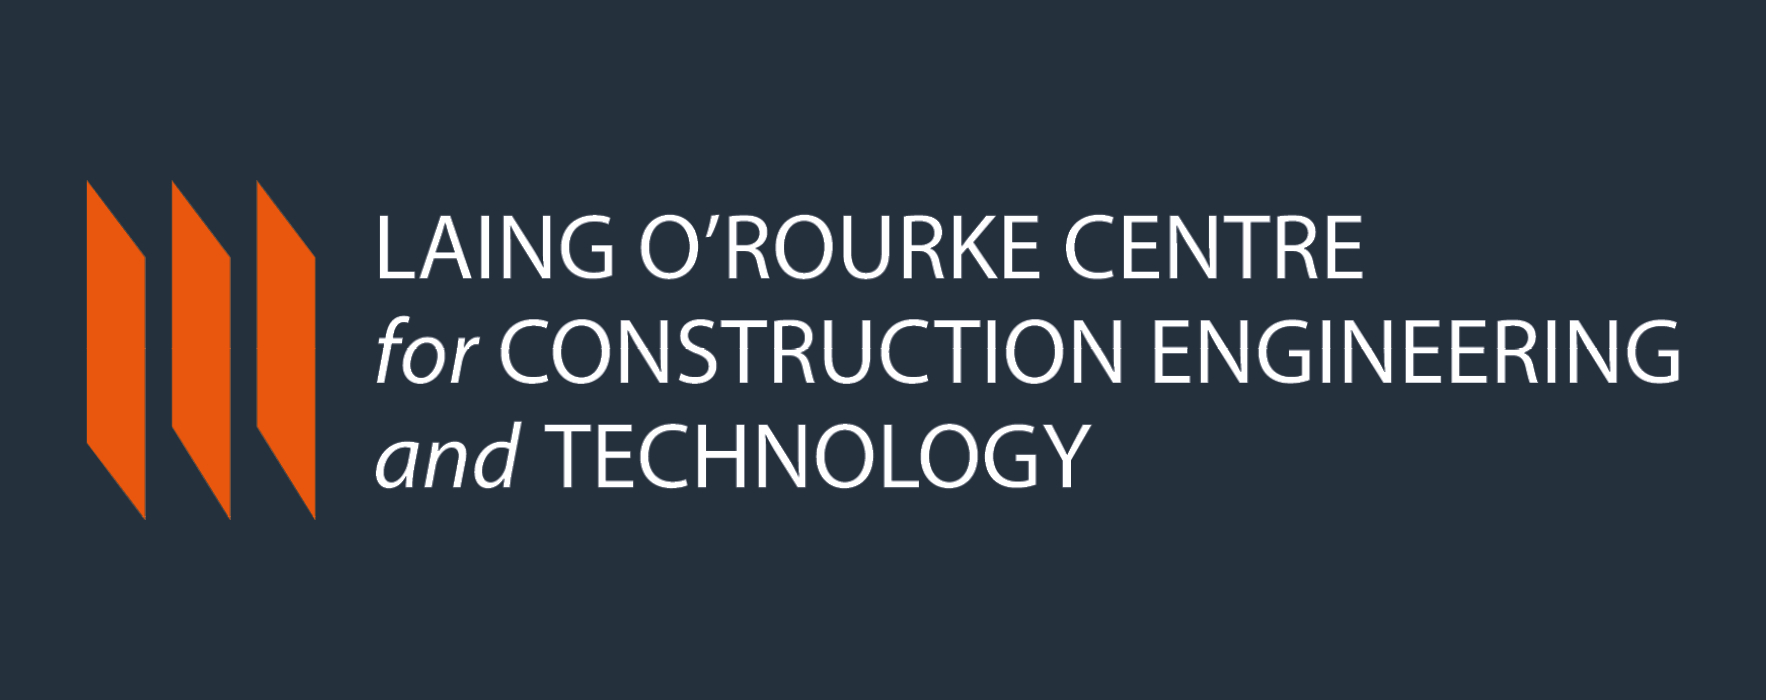 Laing O'Rourke Centre - About us